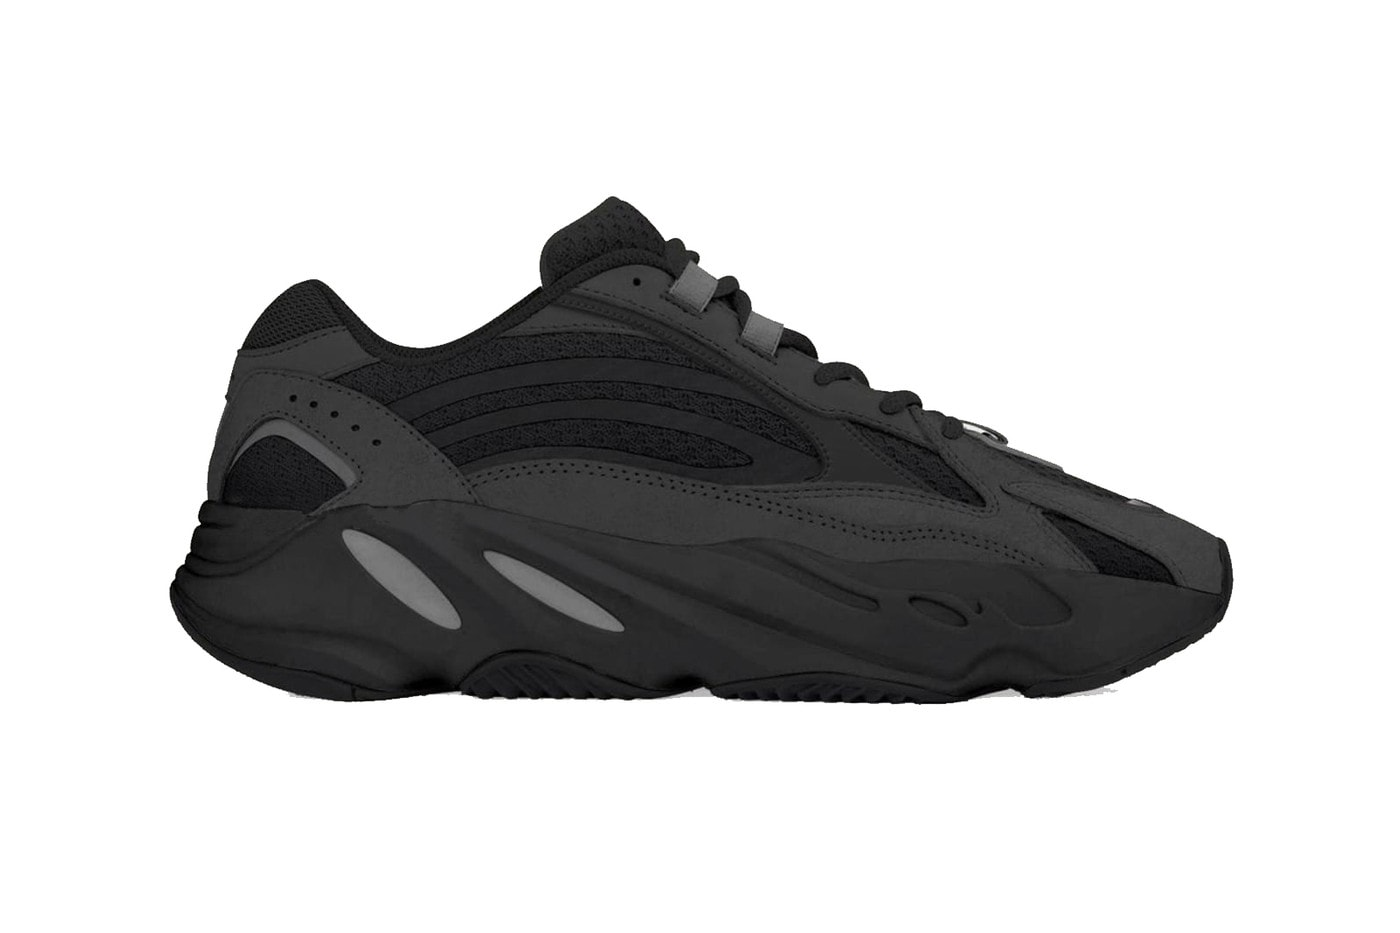 "adidas Yeezy Boost 700 ""Vanta"" - The world's darkest black color scheme"